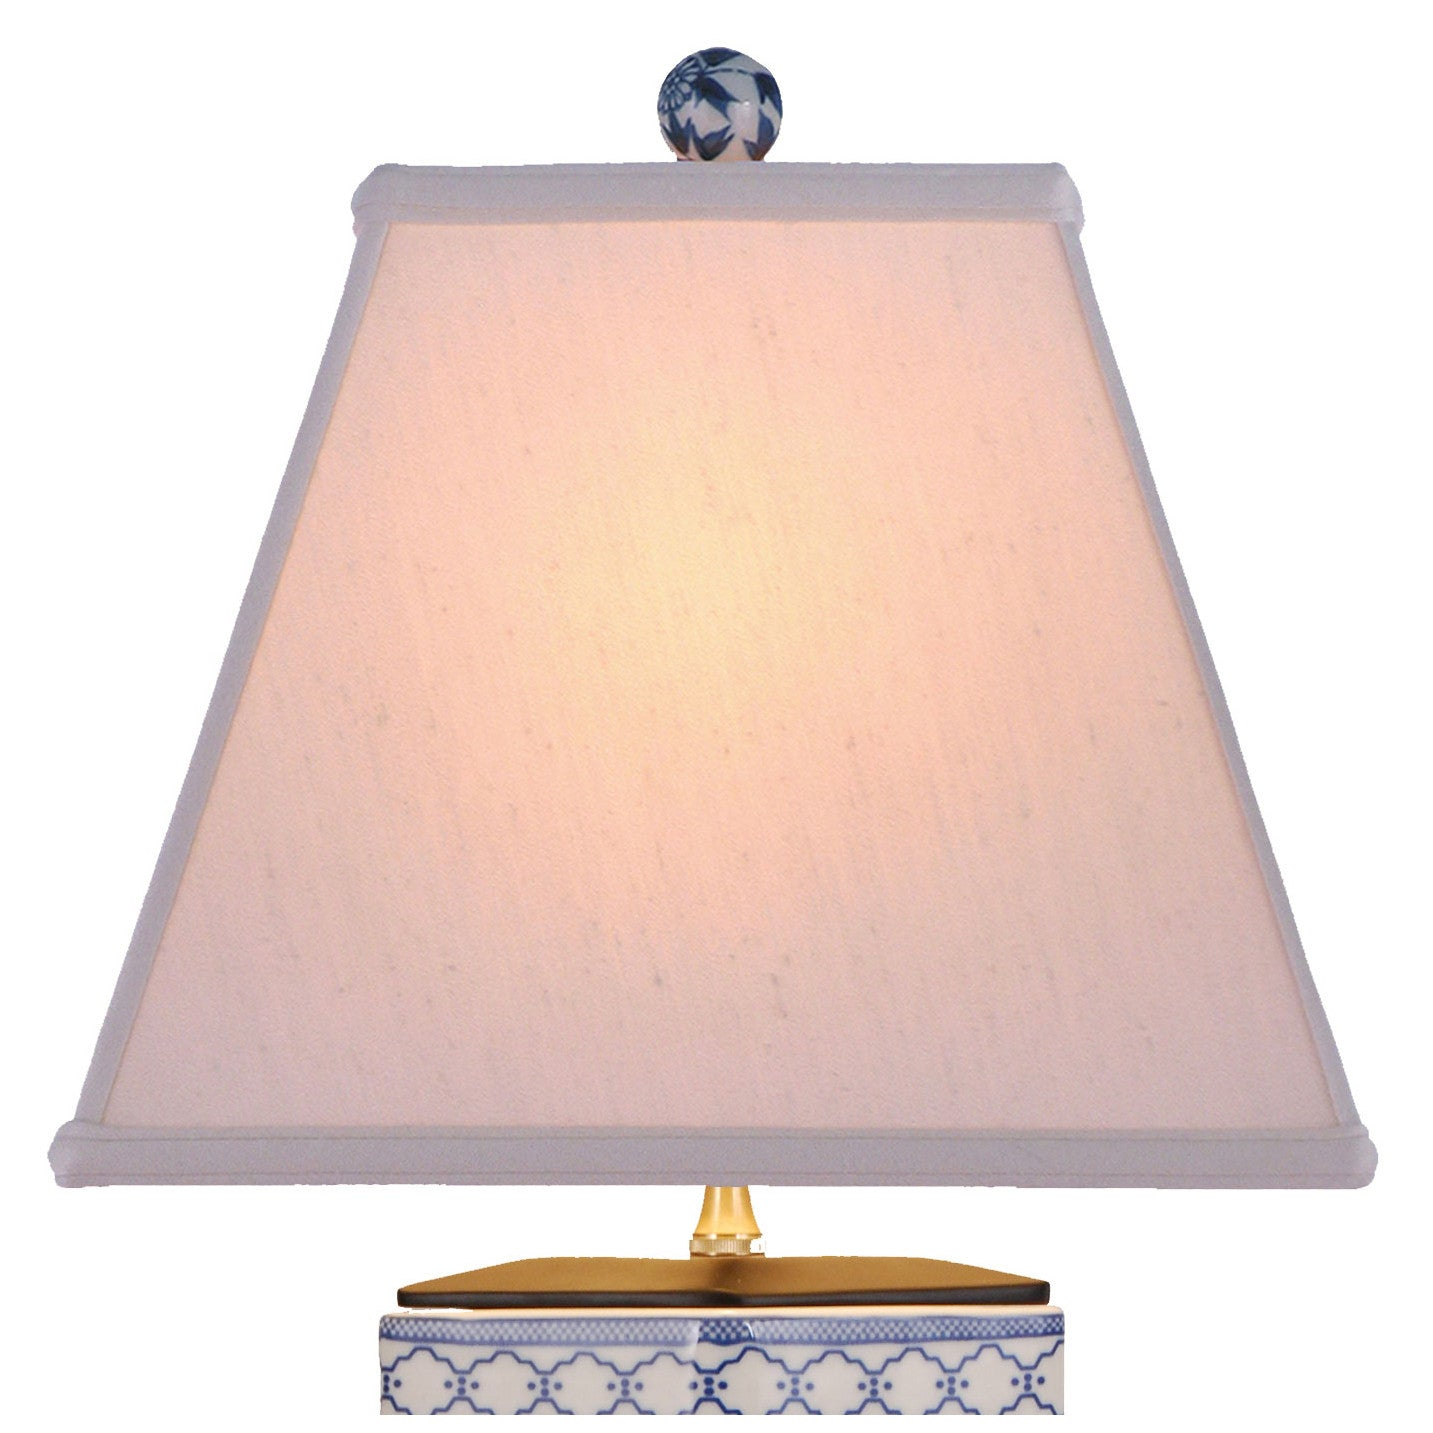 Rhombic Blue & White Porcelain Table Lamp